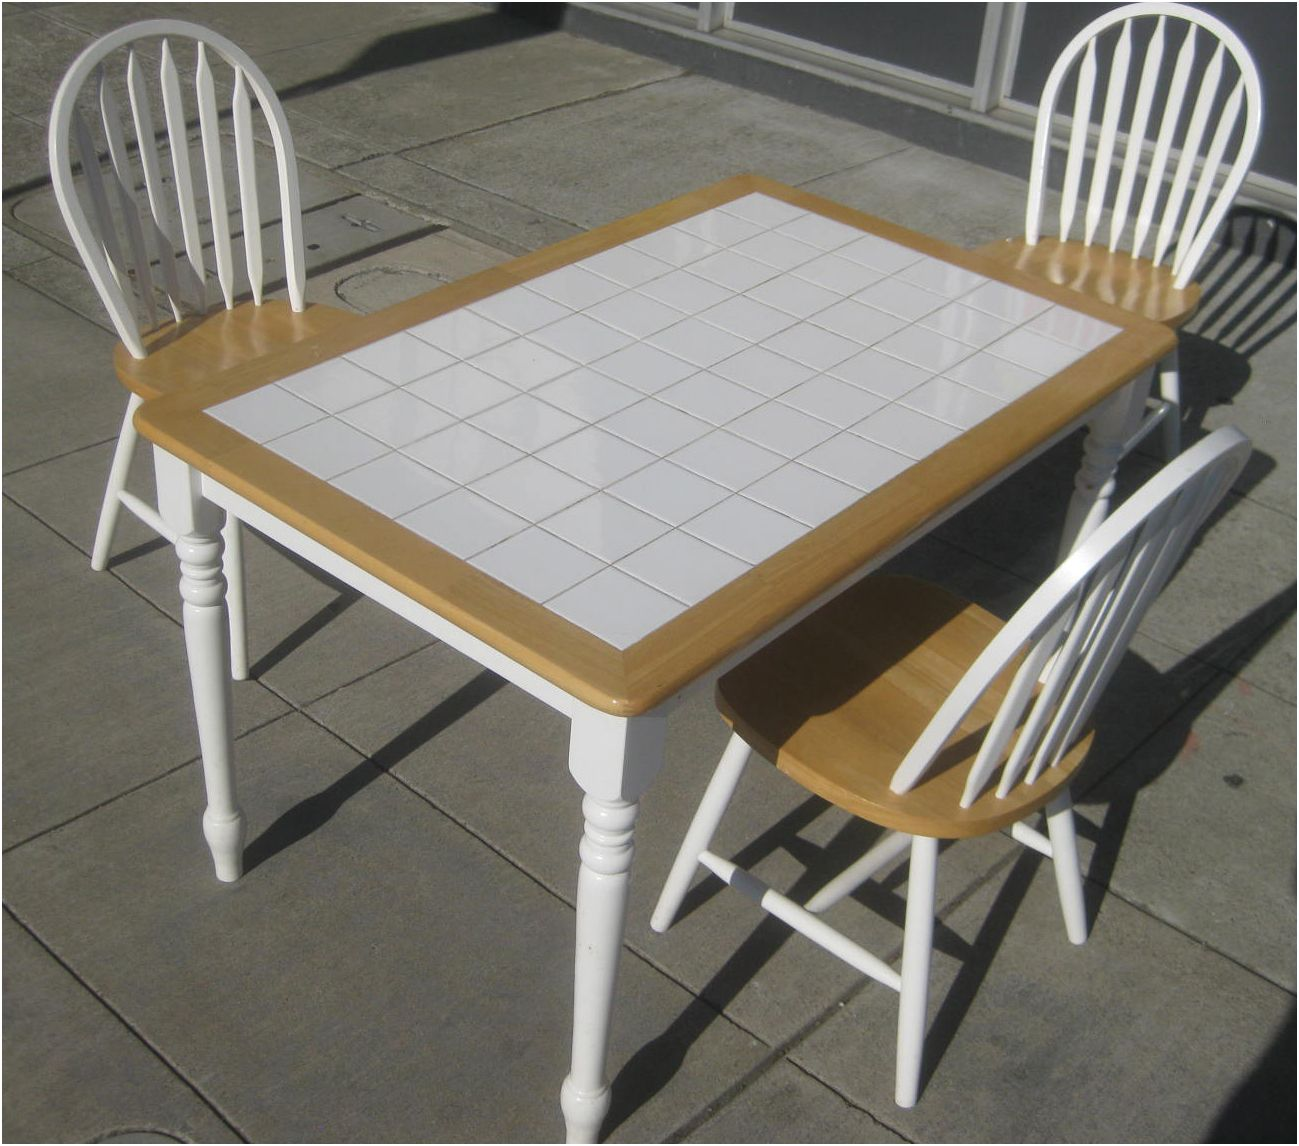 Uhuru Furniture Collectibles Sold Tile Top Table And Of Tile Top